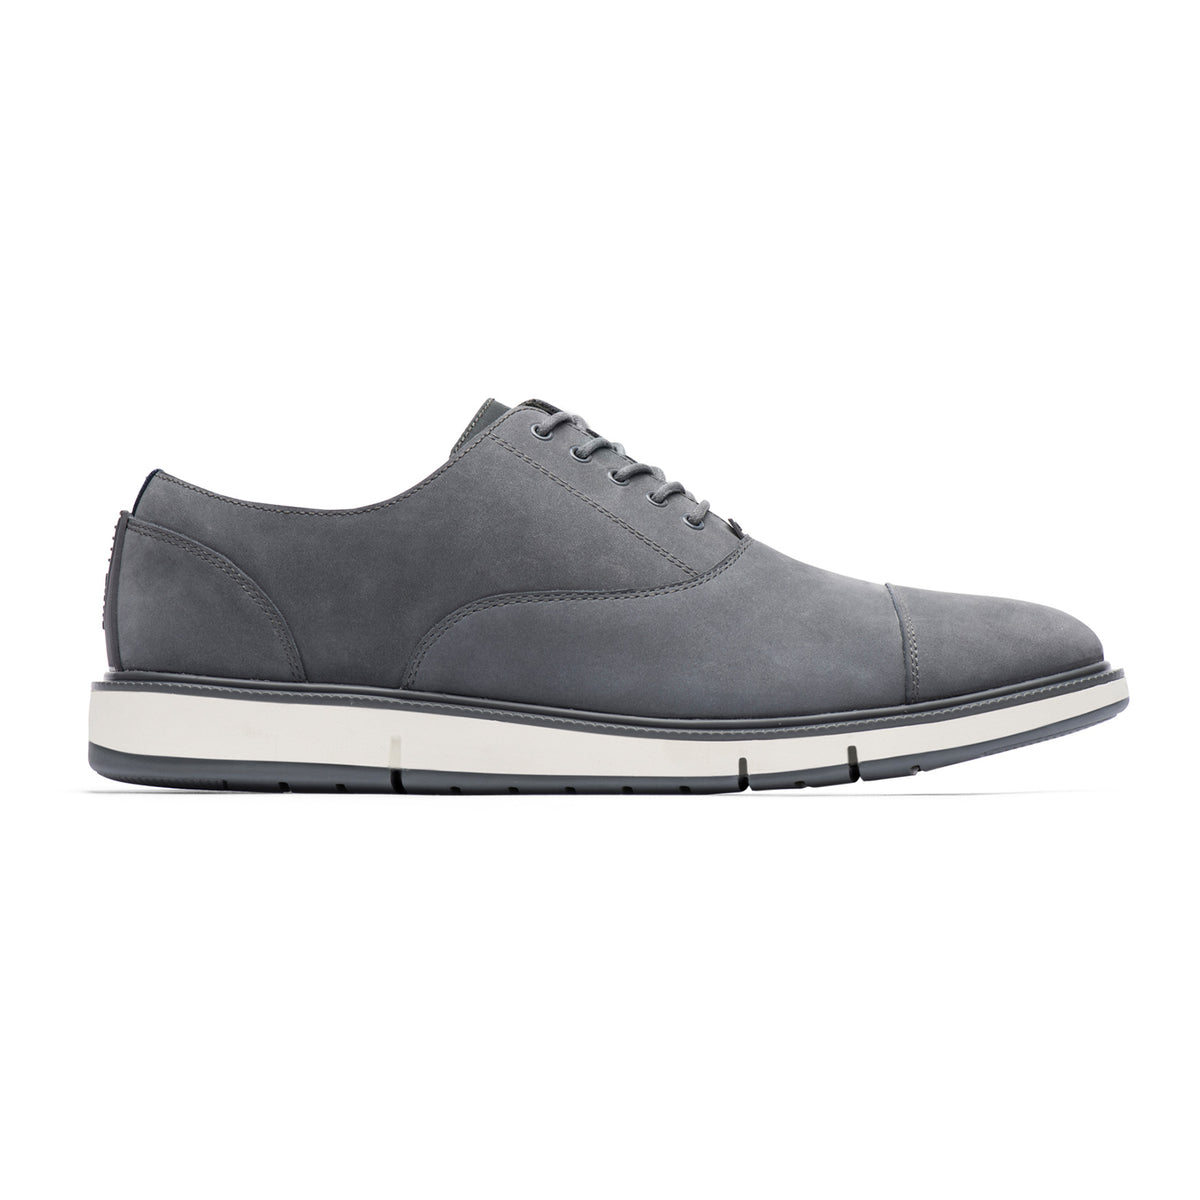 Motion Cap Toe - background::white,variant::Gray/Navy